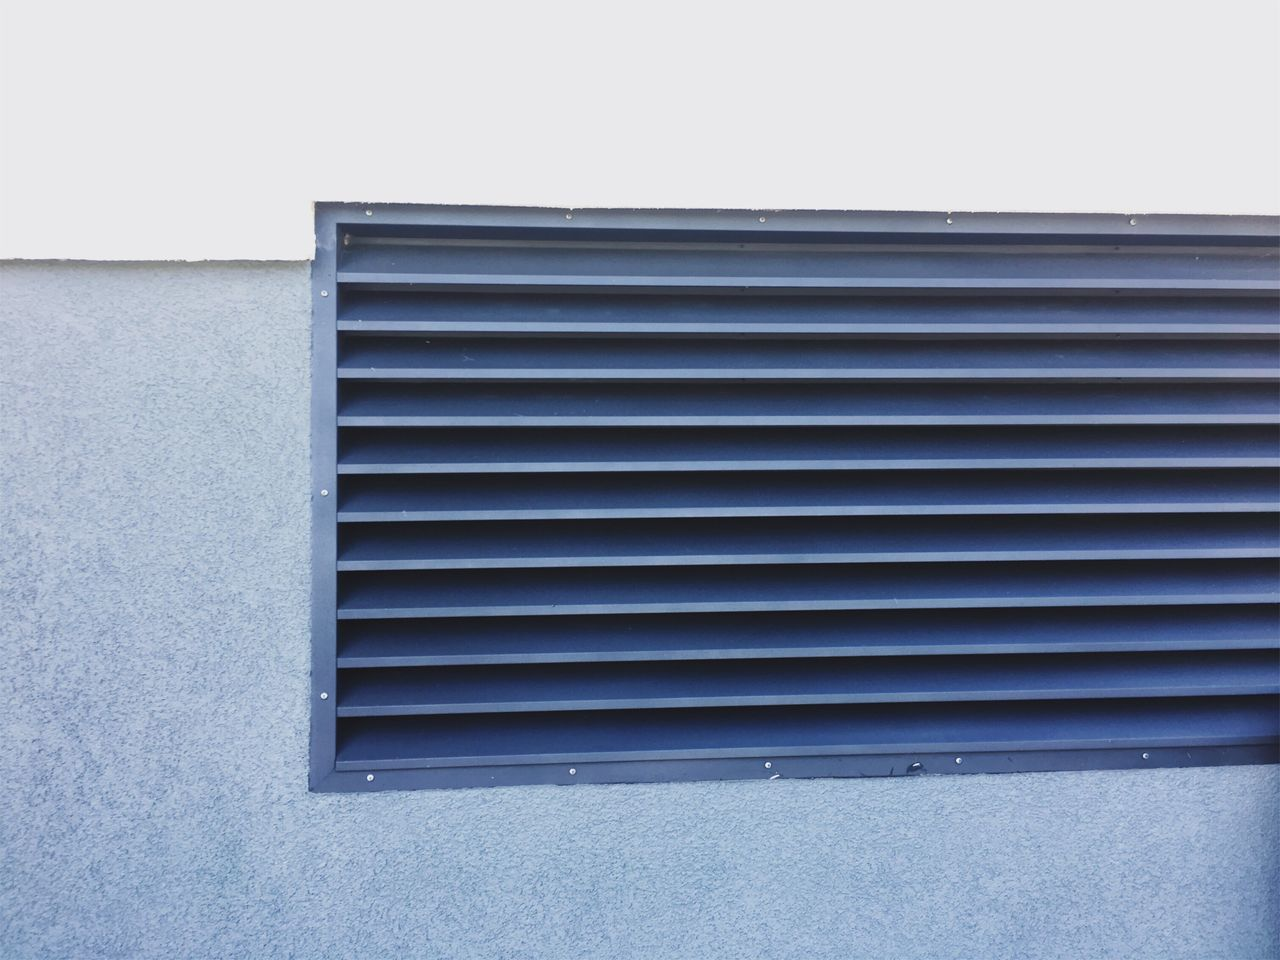 50 shades of air condition. Built Structure Building Exterior Architecture Shutter Pattern No People Outdoors Corrugated Iron Industry Steel Day Close-up Fresh Air Abstract